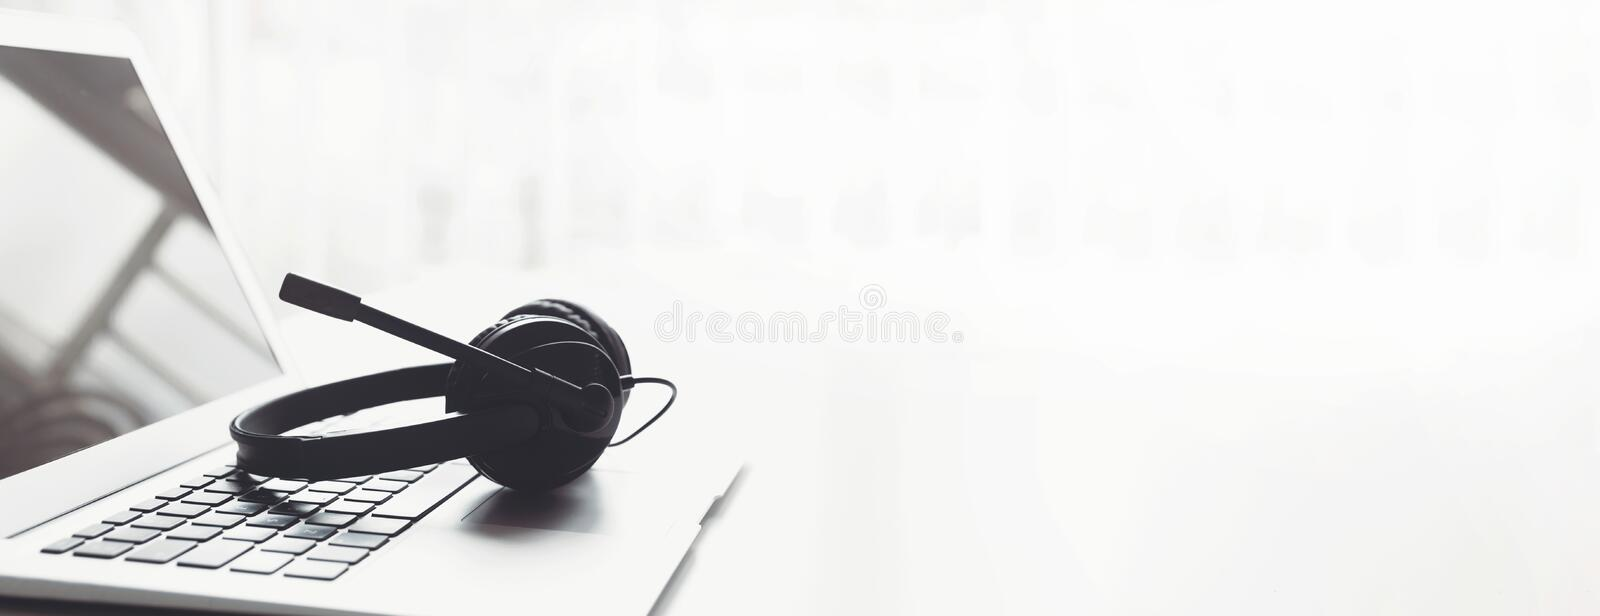 Headset, hotline support concept in office royalty free stock photos